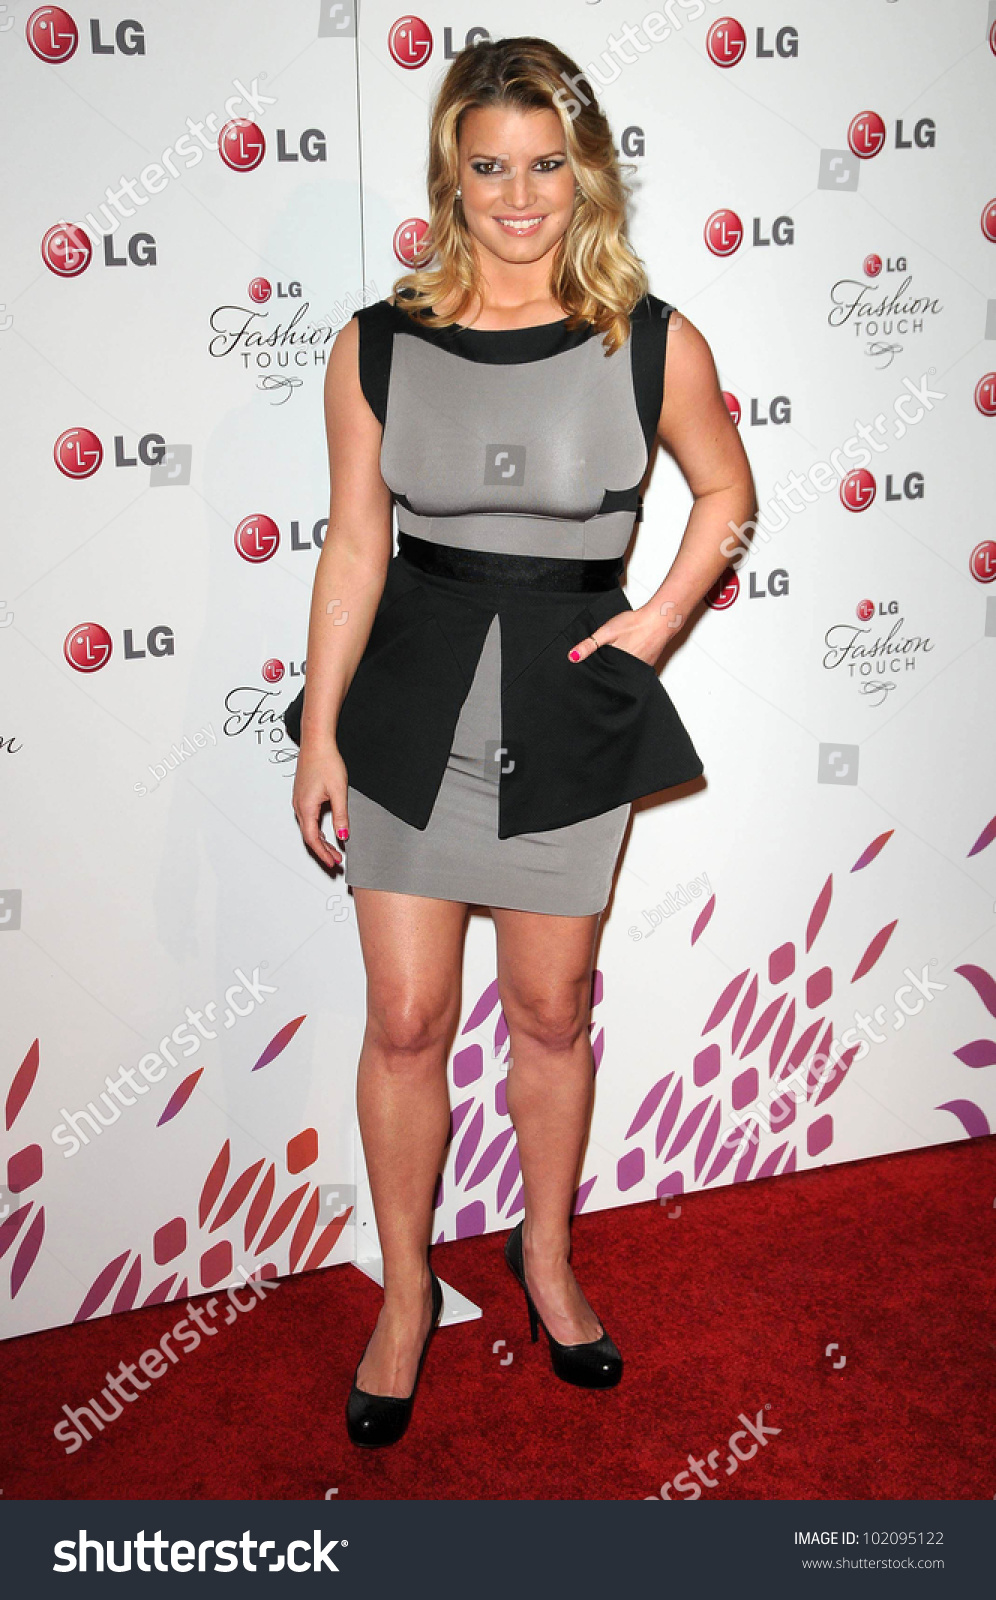 """Jessica Simpson At The Lg """"Fashion Touch"""" Party, Soho ..."""